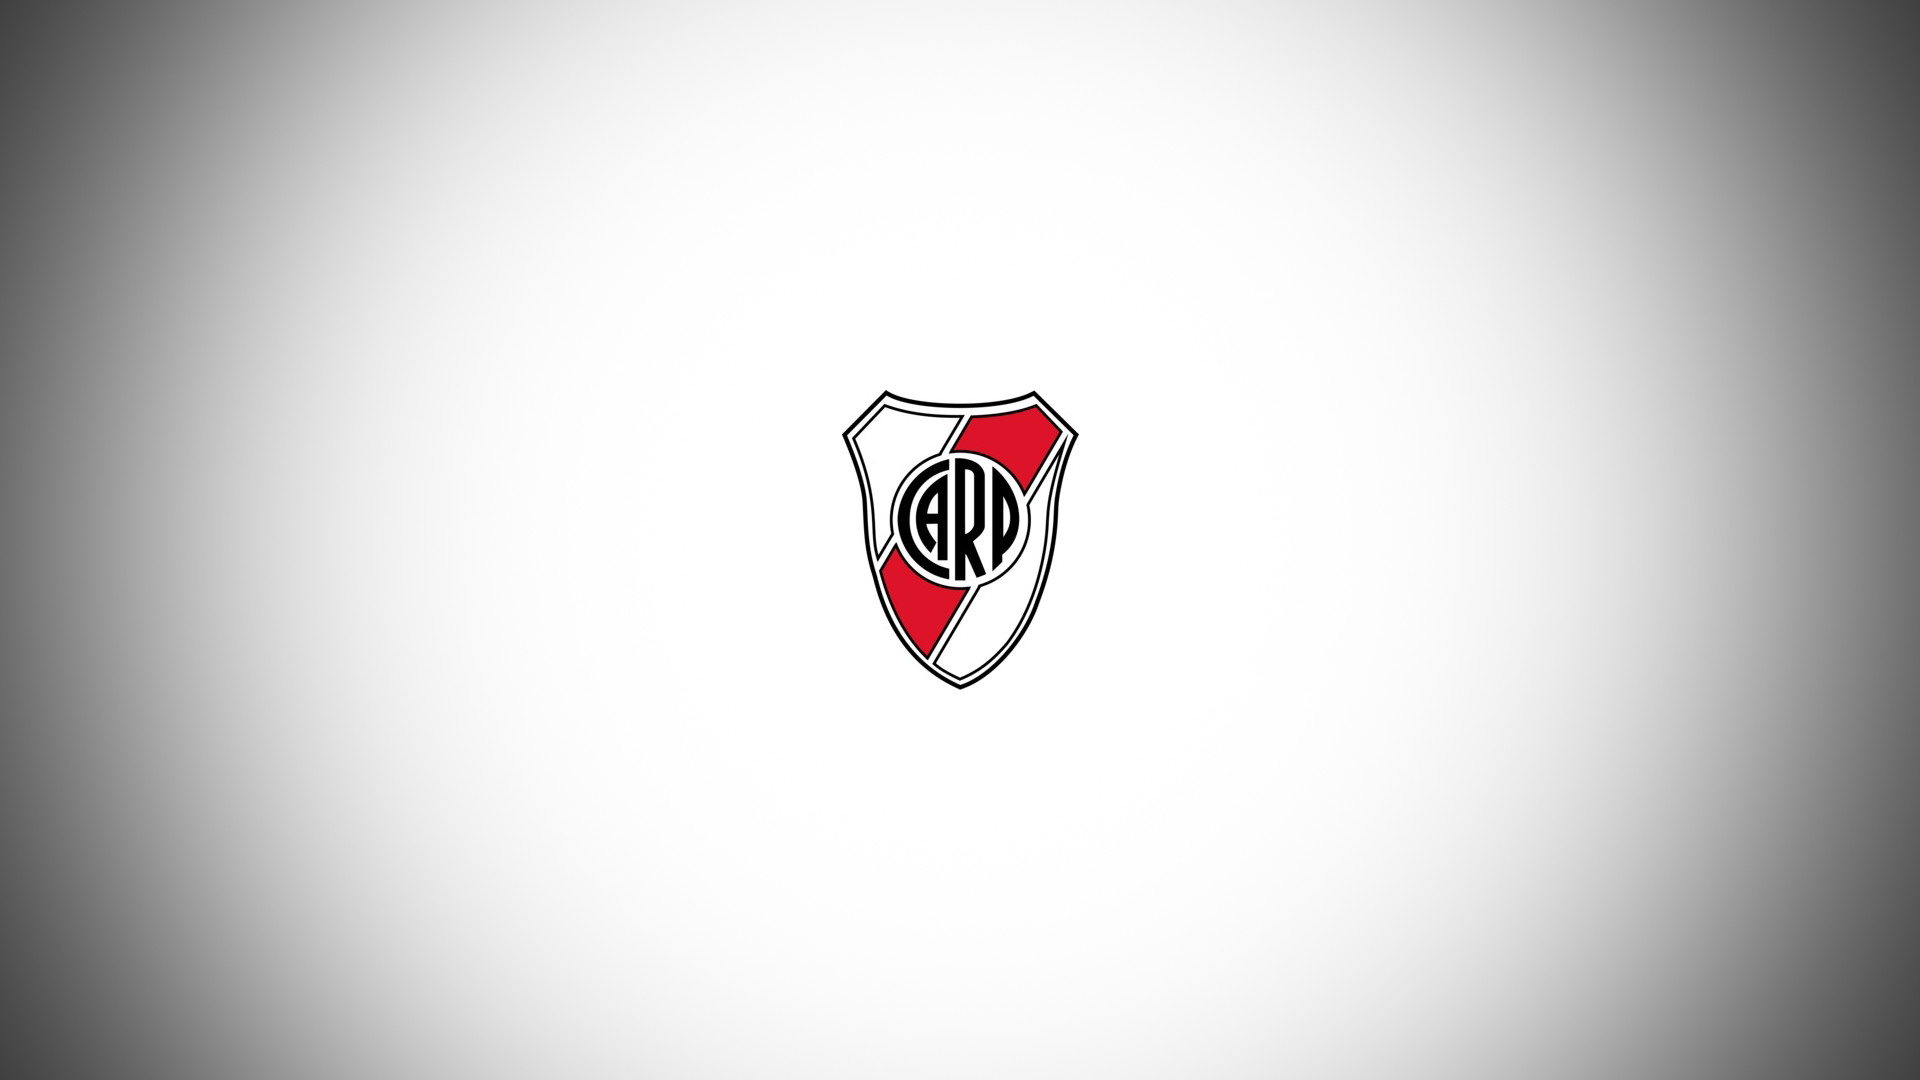 1920x1080 Comunidad Club Atlético River Plate · (IMG) Wallpapers simples